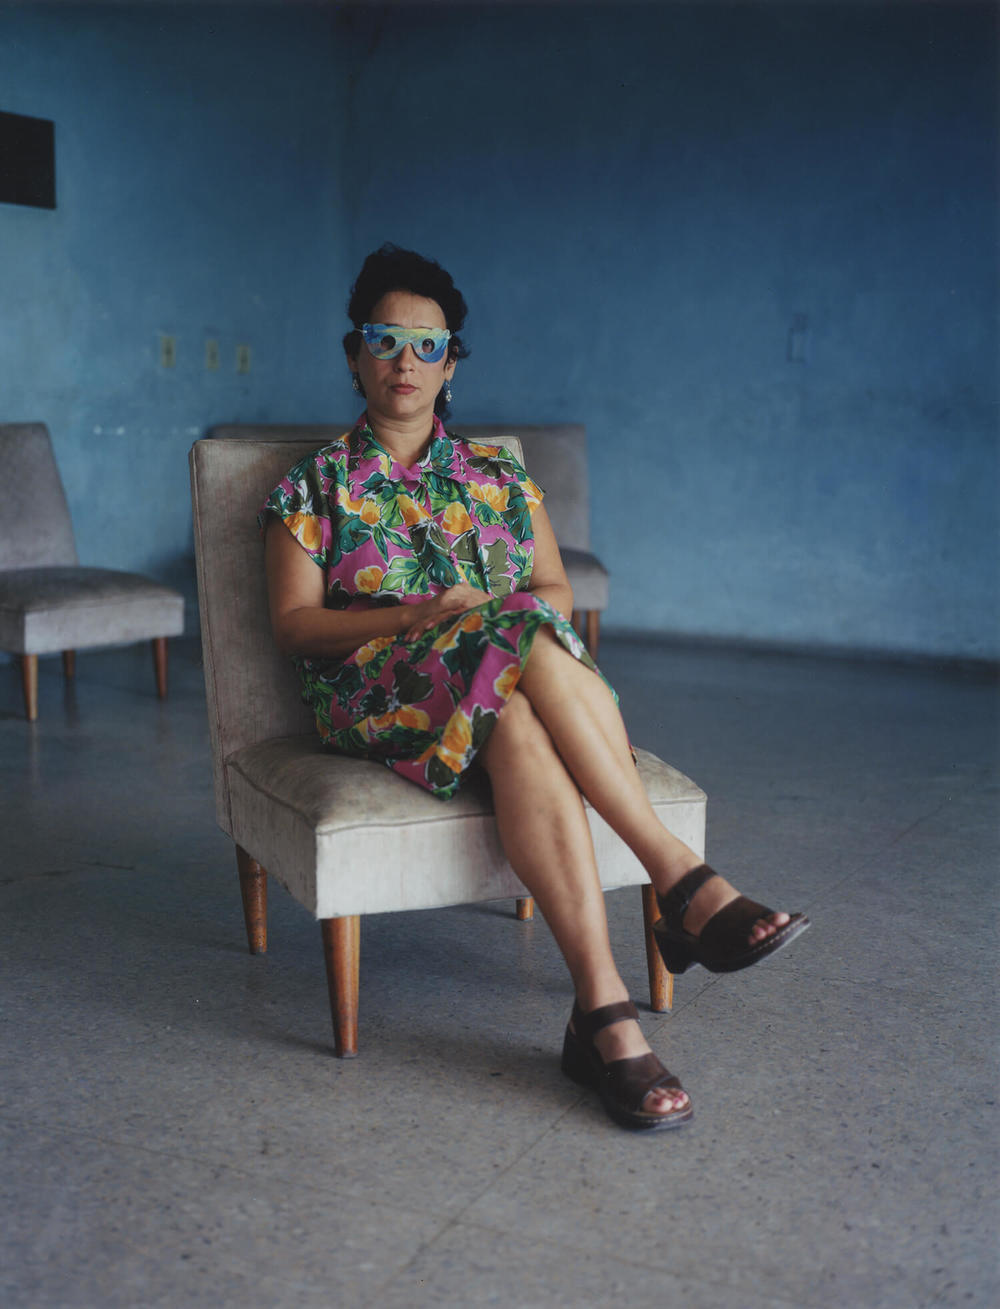 Rene Vallejo Psychiatric Hospital, Cuba, C-type print, 16 x 20 inches, 2003